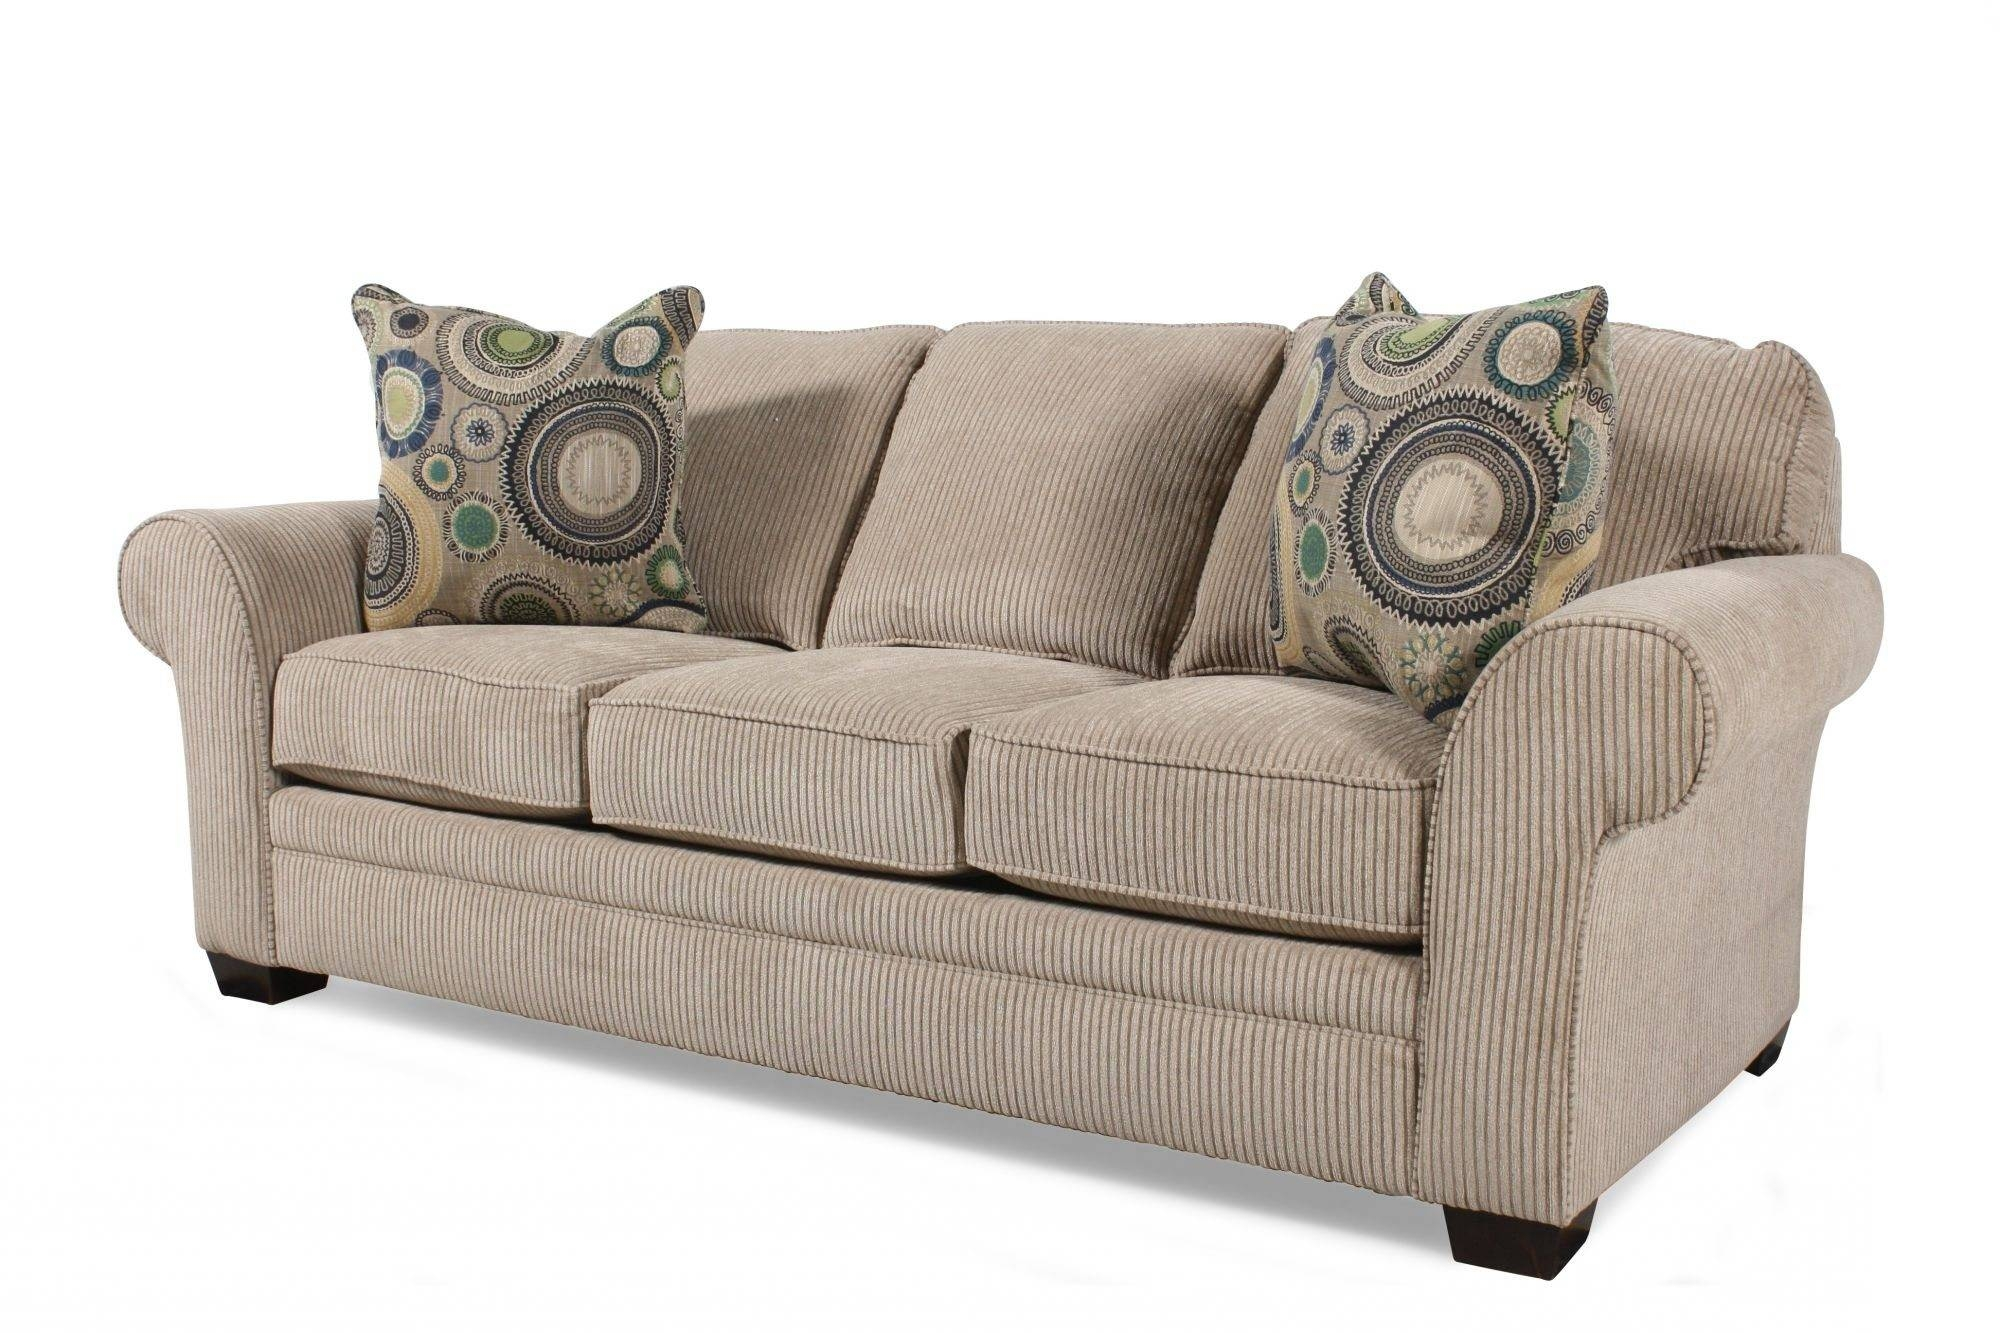 Sofas Center : Formal Living Room Sofa Design Broyhill Furniture Throughout Broyhill  Emily Sofas (Image